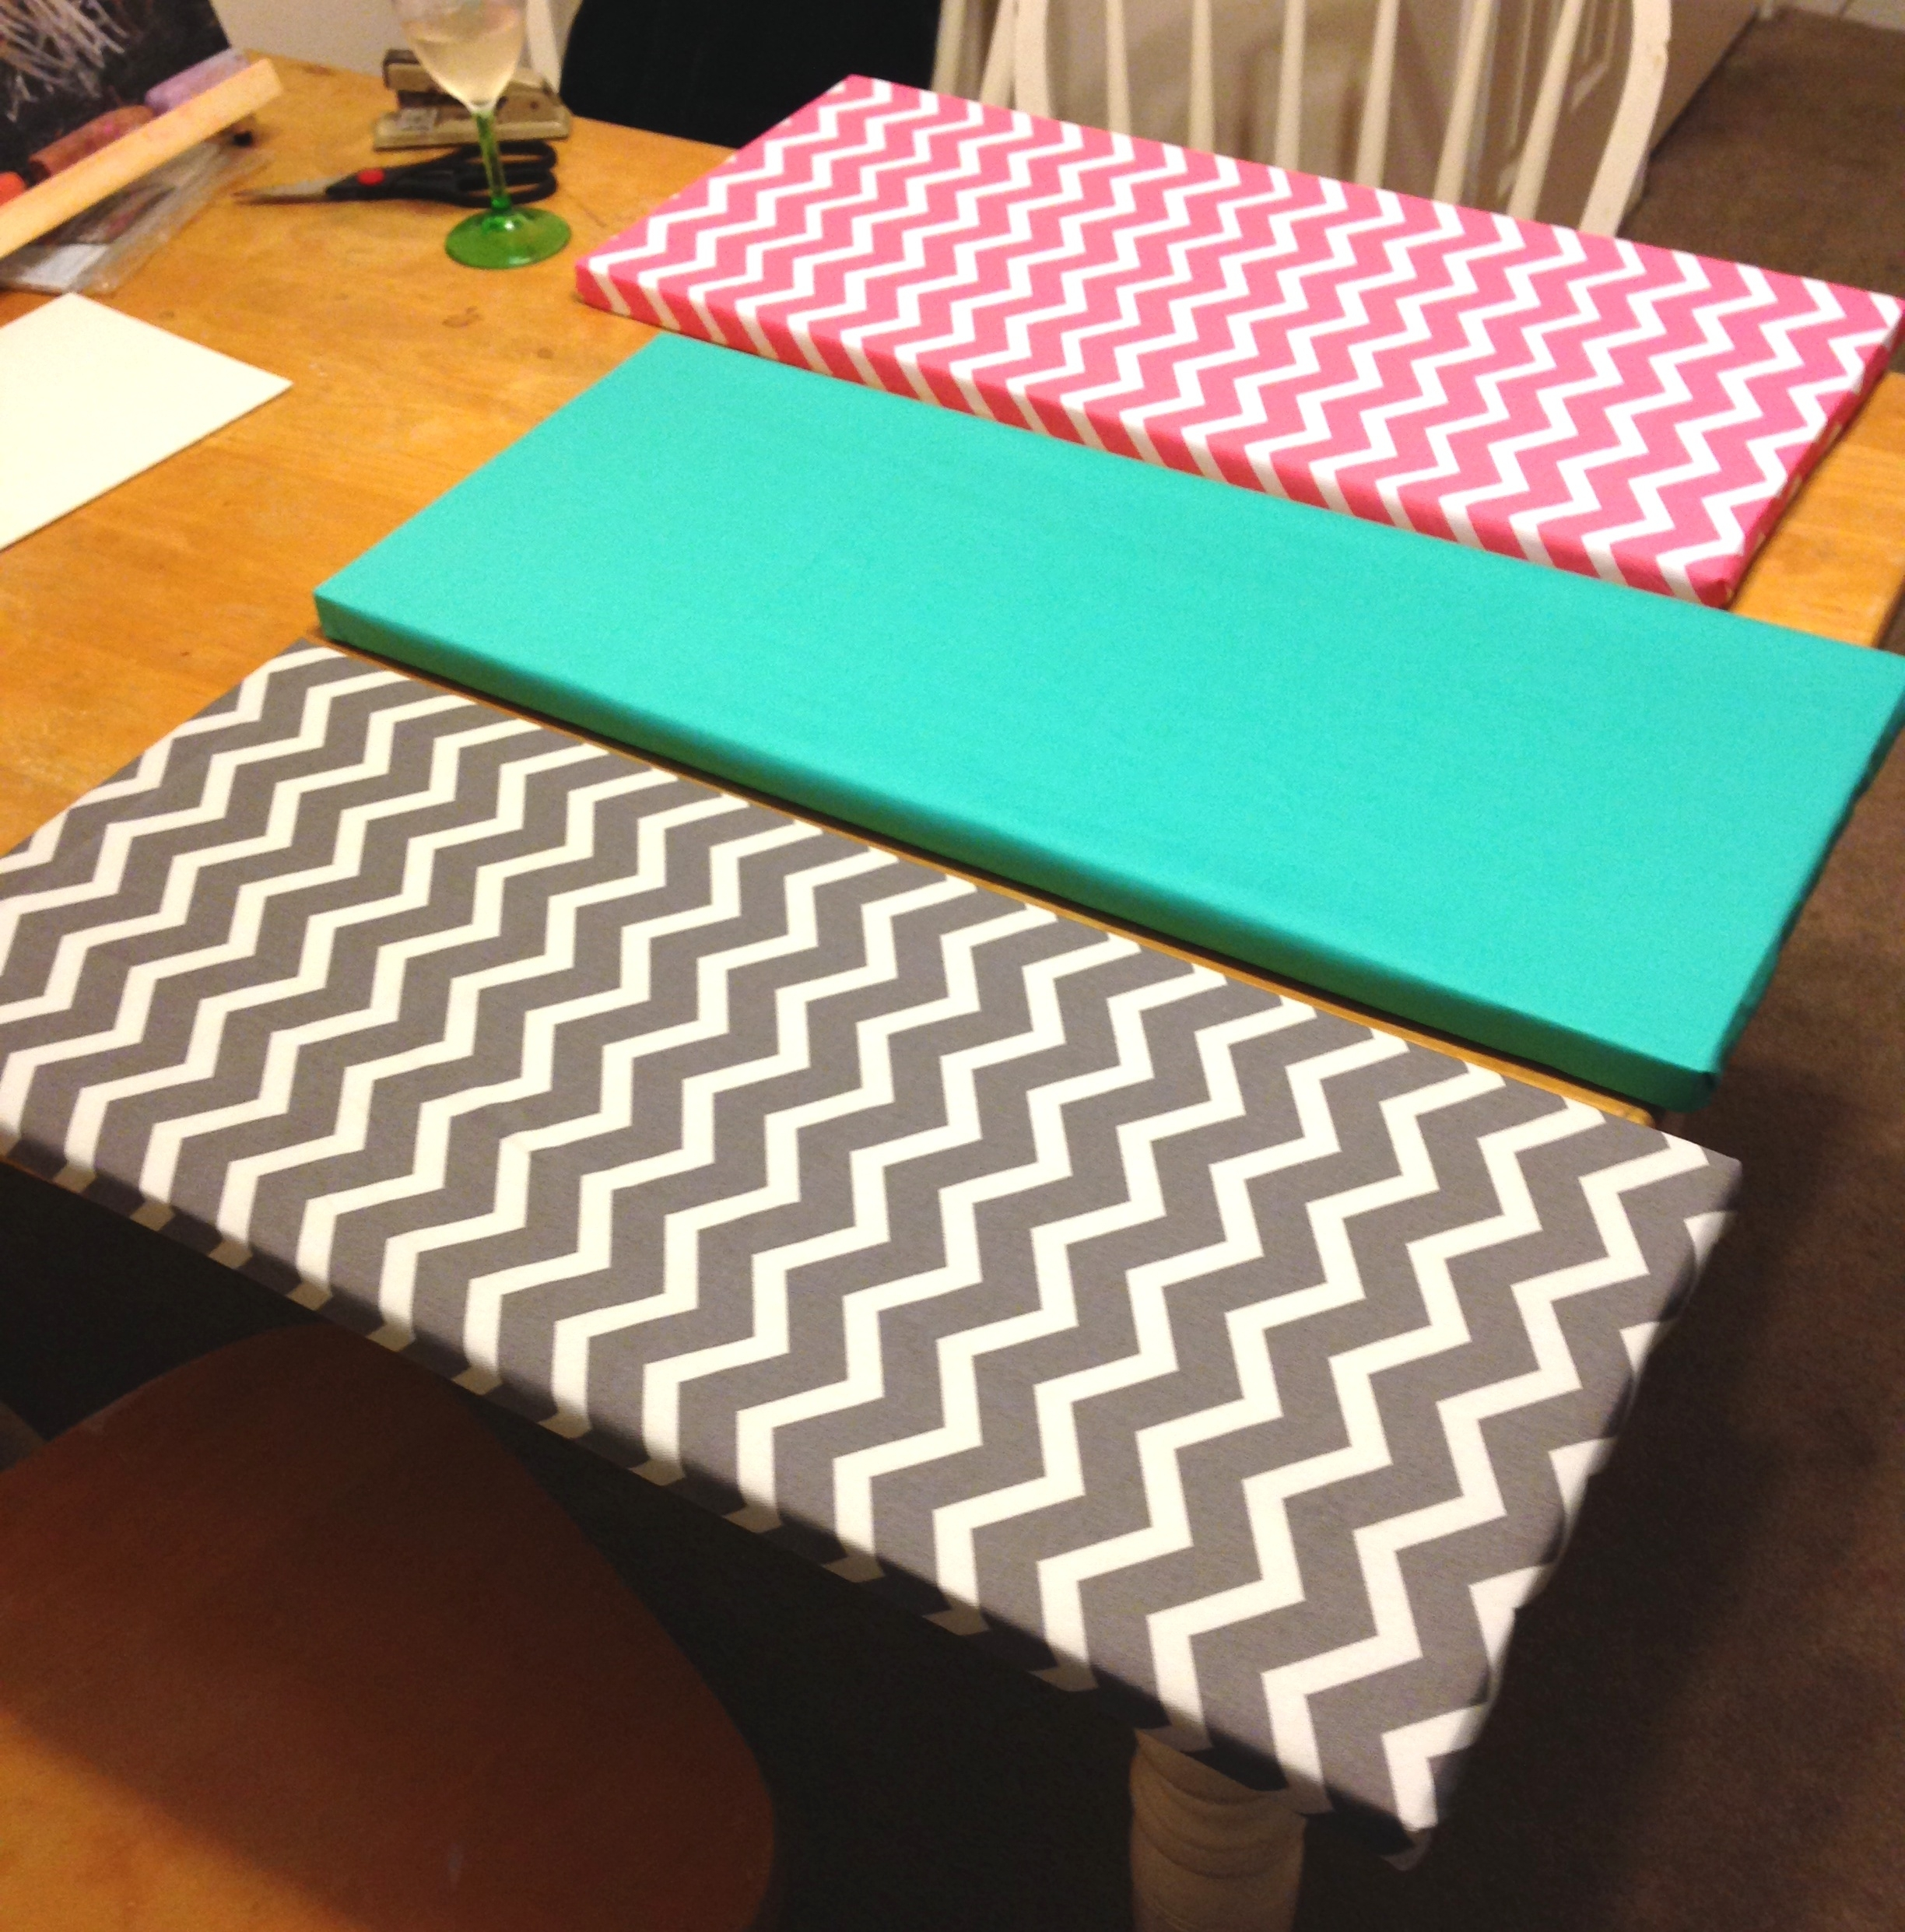 Wall Art | Baby Room | Pinterest | Walls, Dorm Room And Room Inside Newest Fabric Covered Foam Wall Art (View 3 of 15)